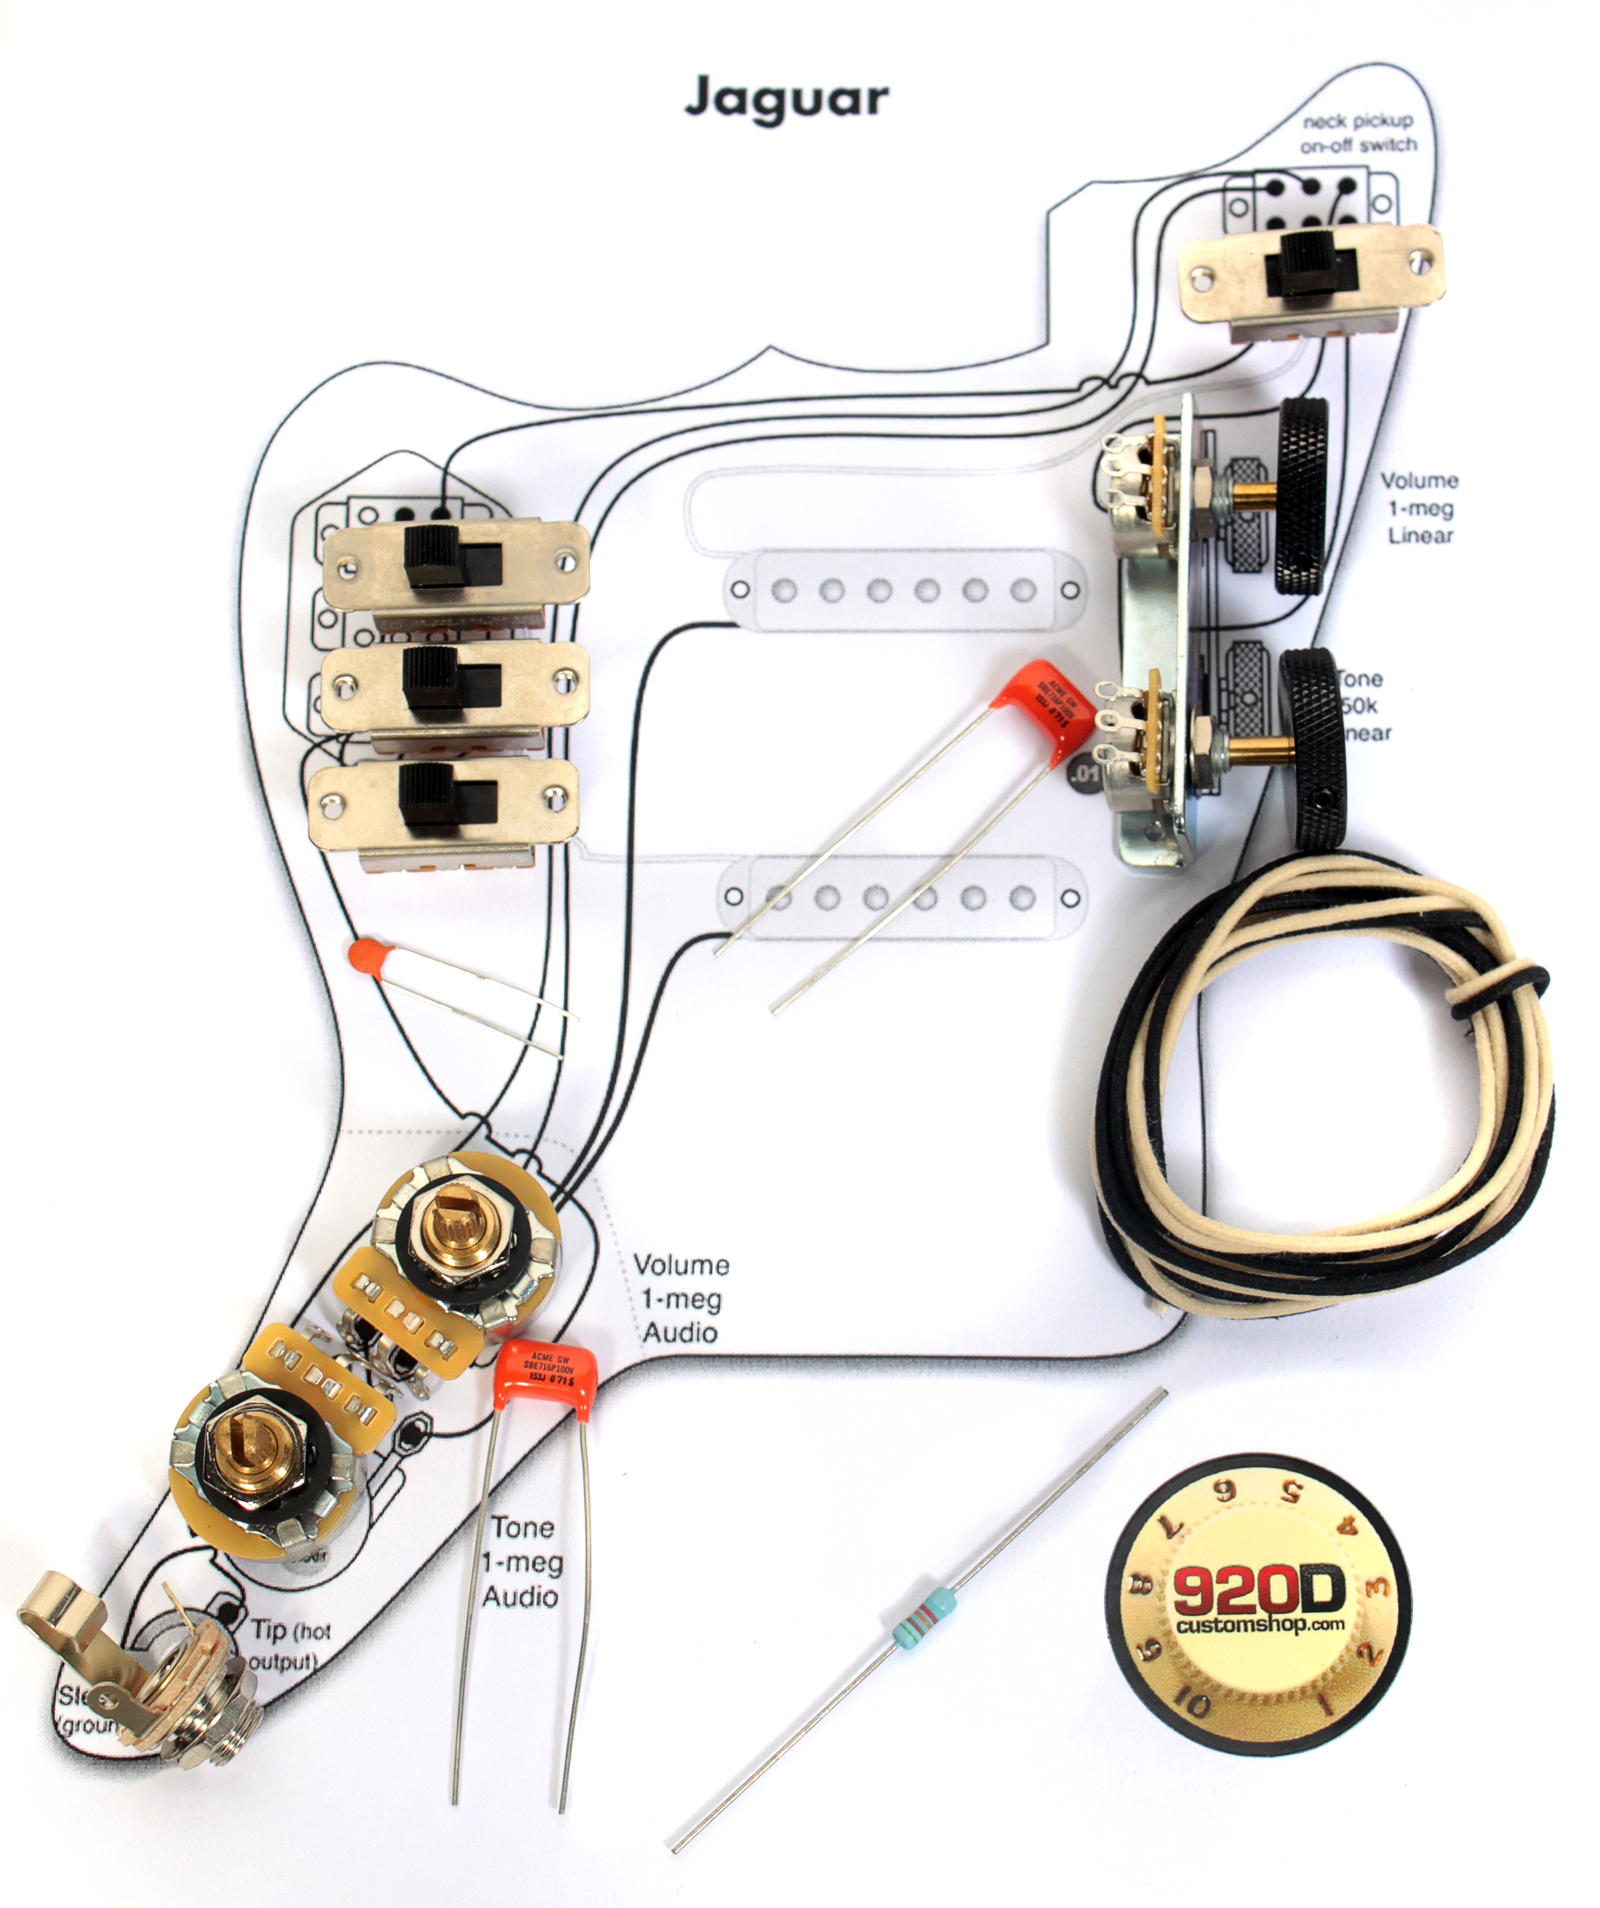 fender vintage 62 jaguar wiring kit pots switch slider caps bracket diagram ebay